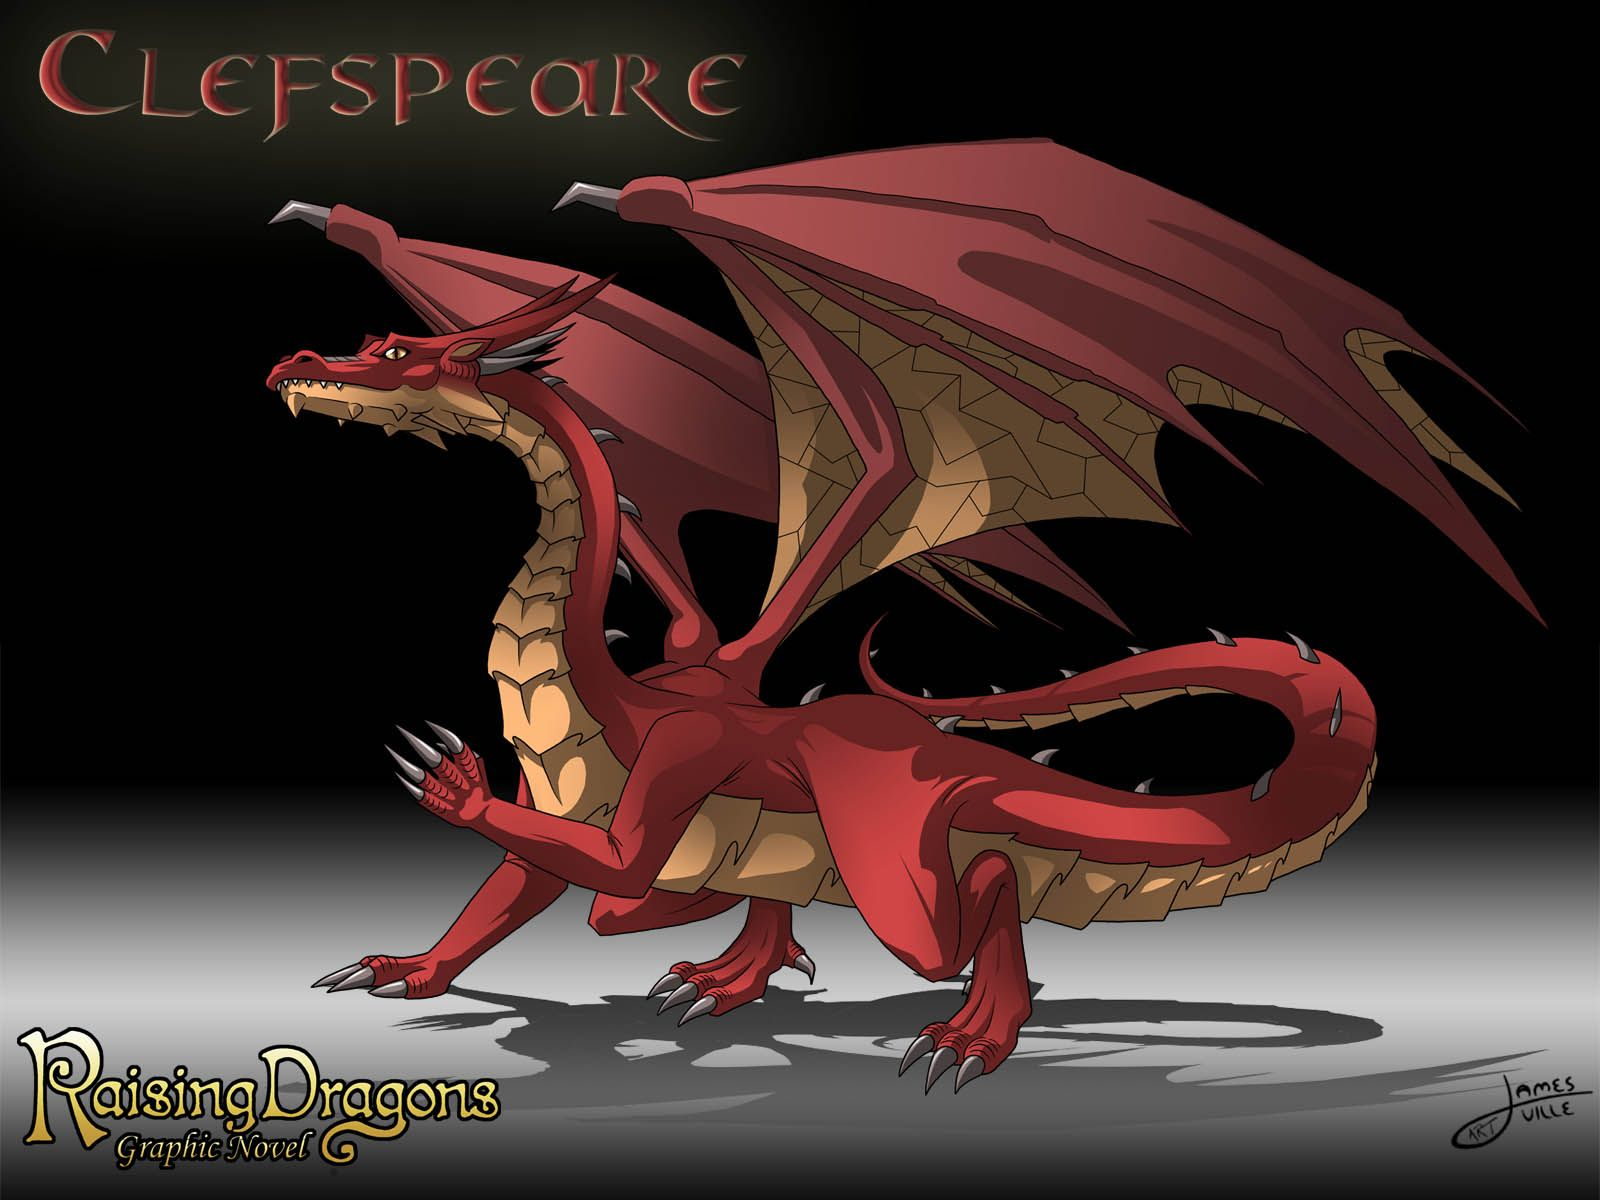 The great dragon clefspeare from the raising dragons graphic novel the great dragon clefspeare from the raising dragons graphic novel ccuart Images